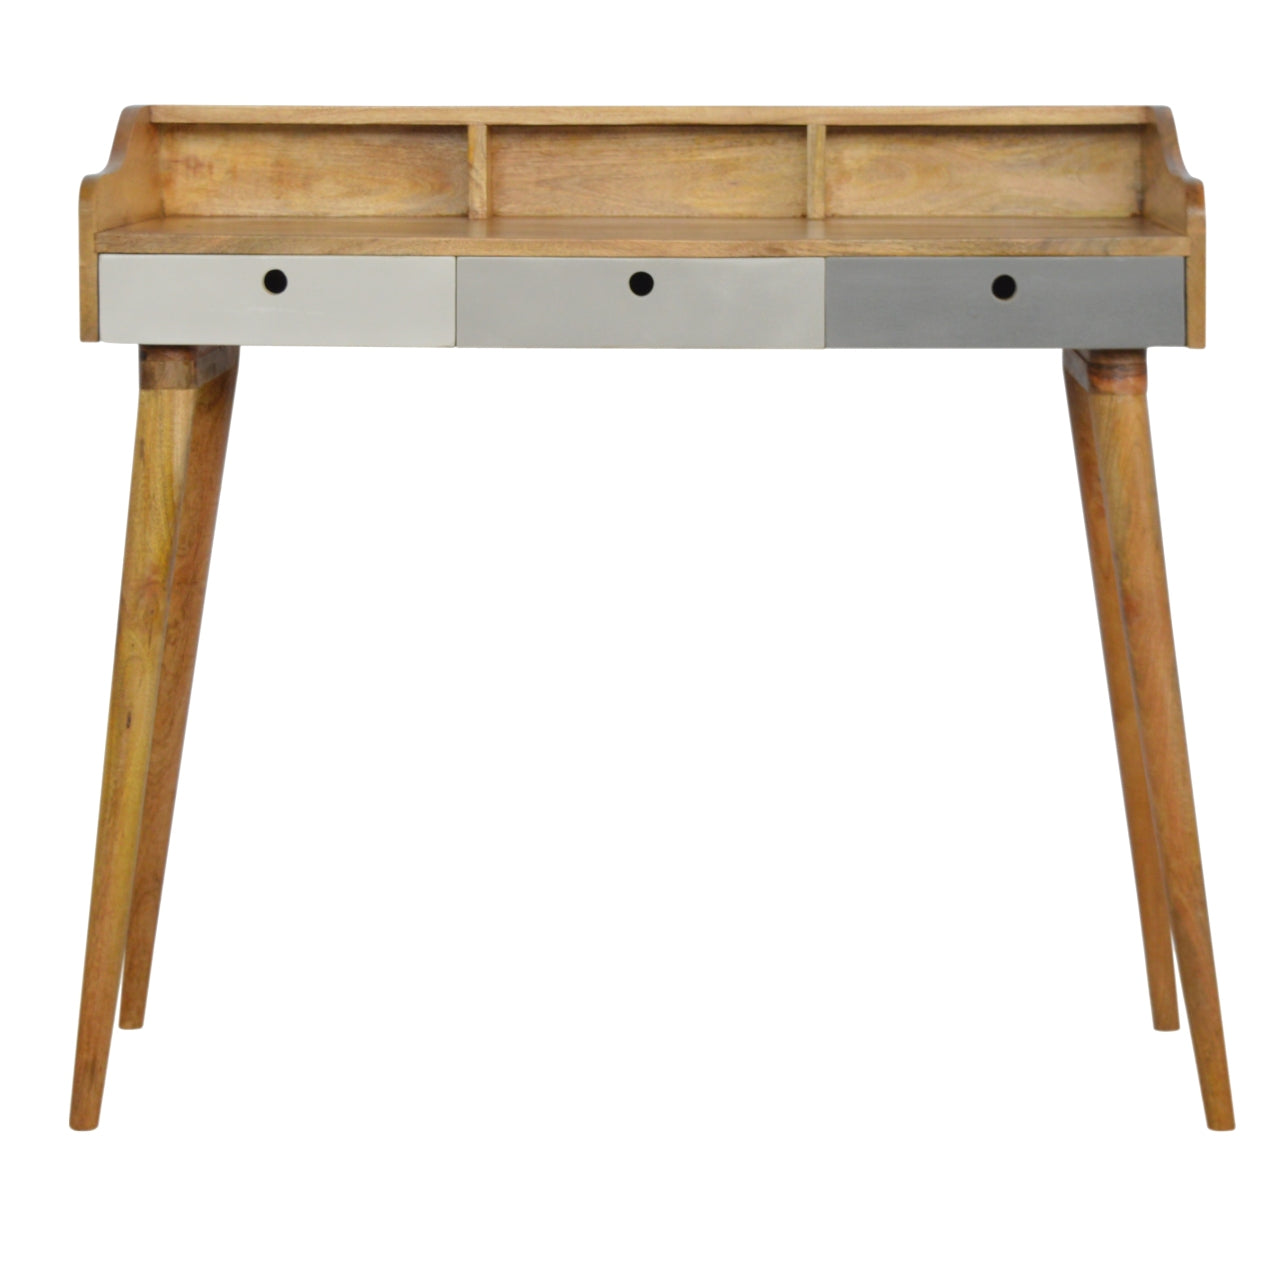 Finn grey writing desk from Mocha Home UK 8906057240258